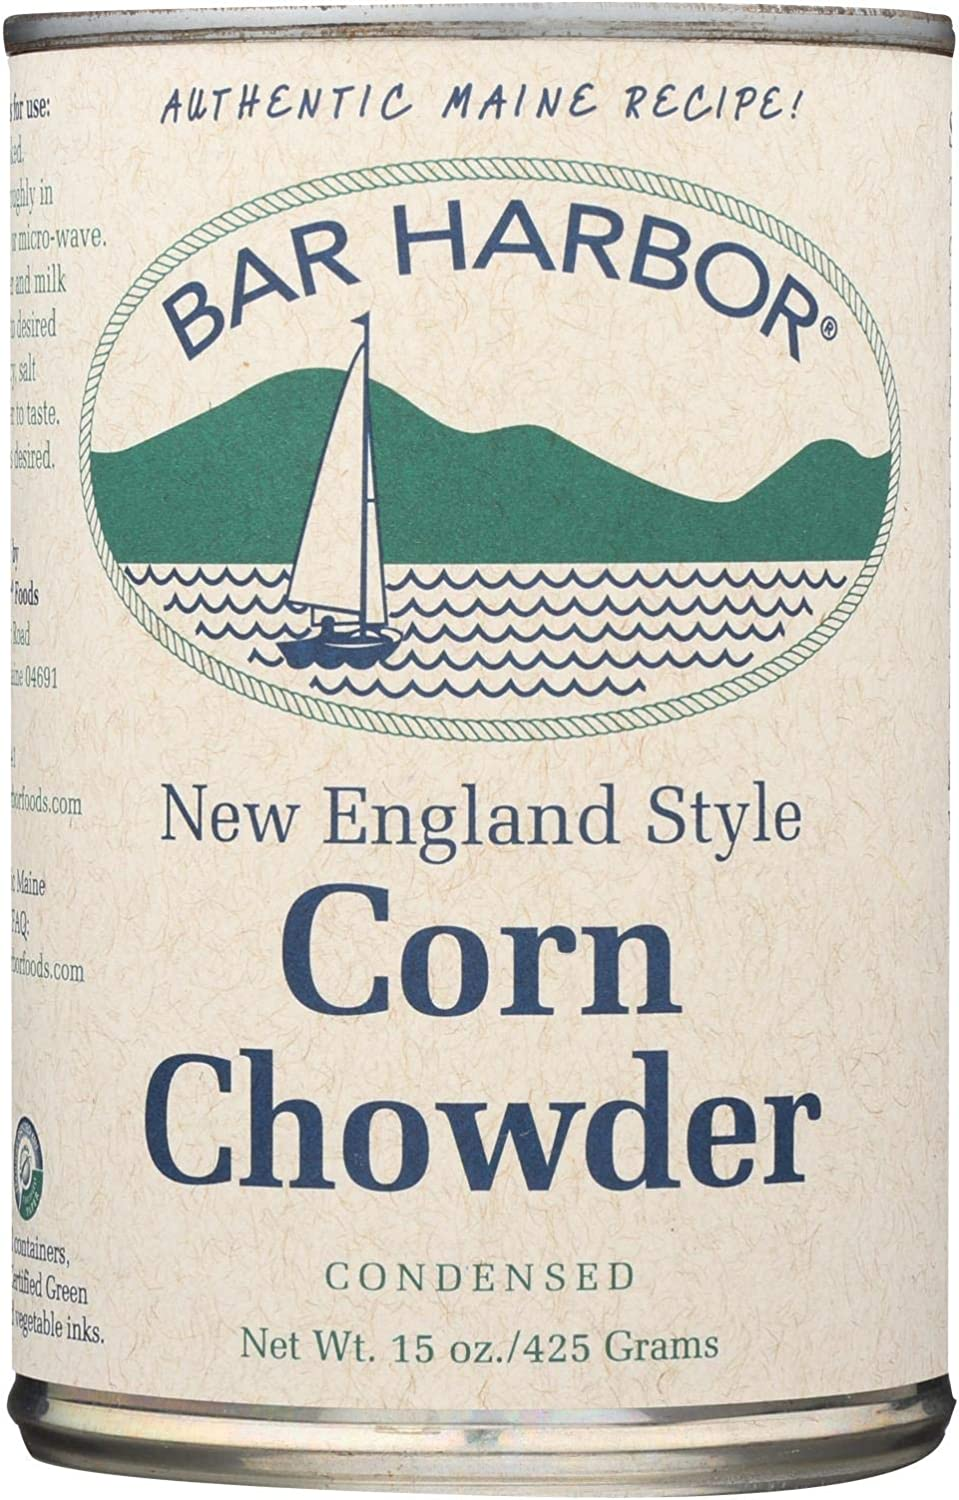 Bar Harbor Shipping included Corn Chowder - oz. 6 of Case Shipping included 15